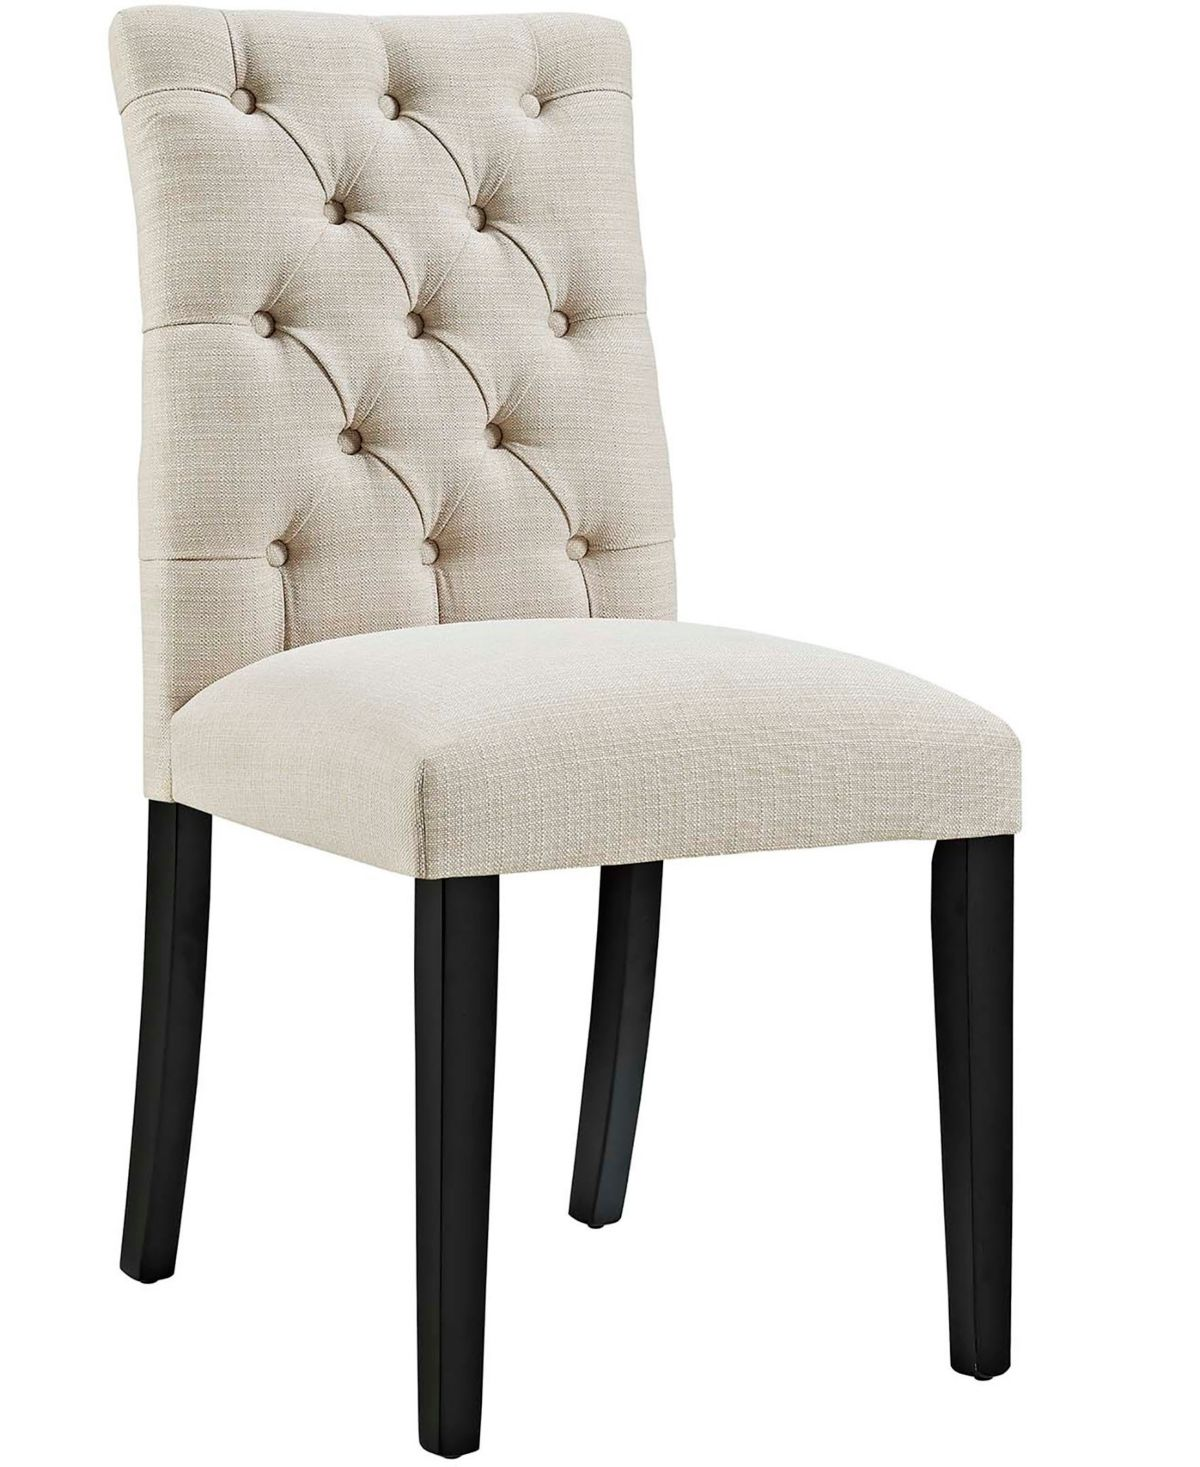 fabric dining chairs on modway duchess fabric dining chair reviews furniture macy s fabric dining chairs upholstered dining side chair dining chairs pinterest